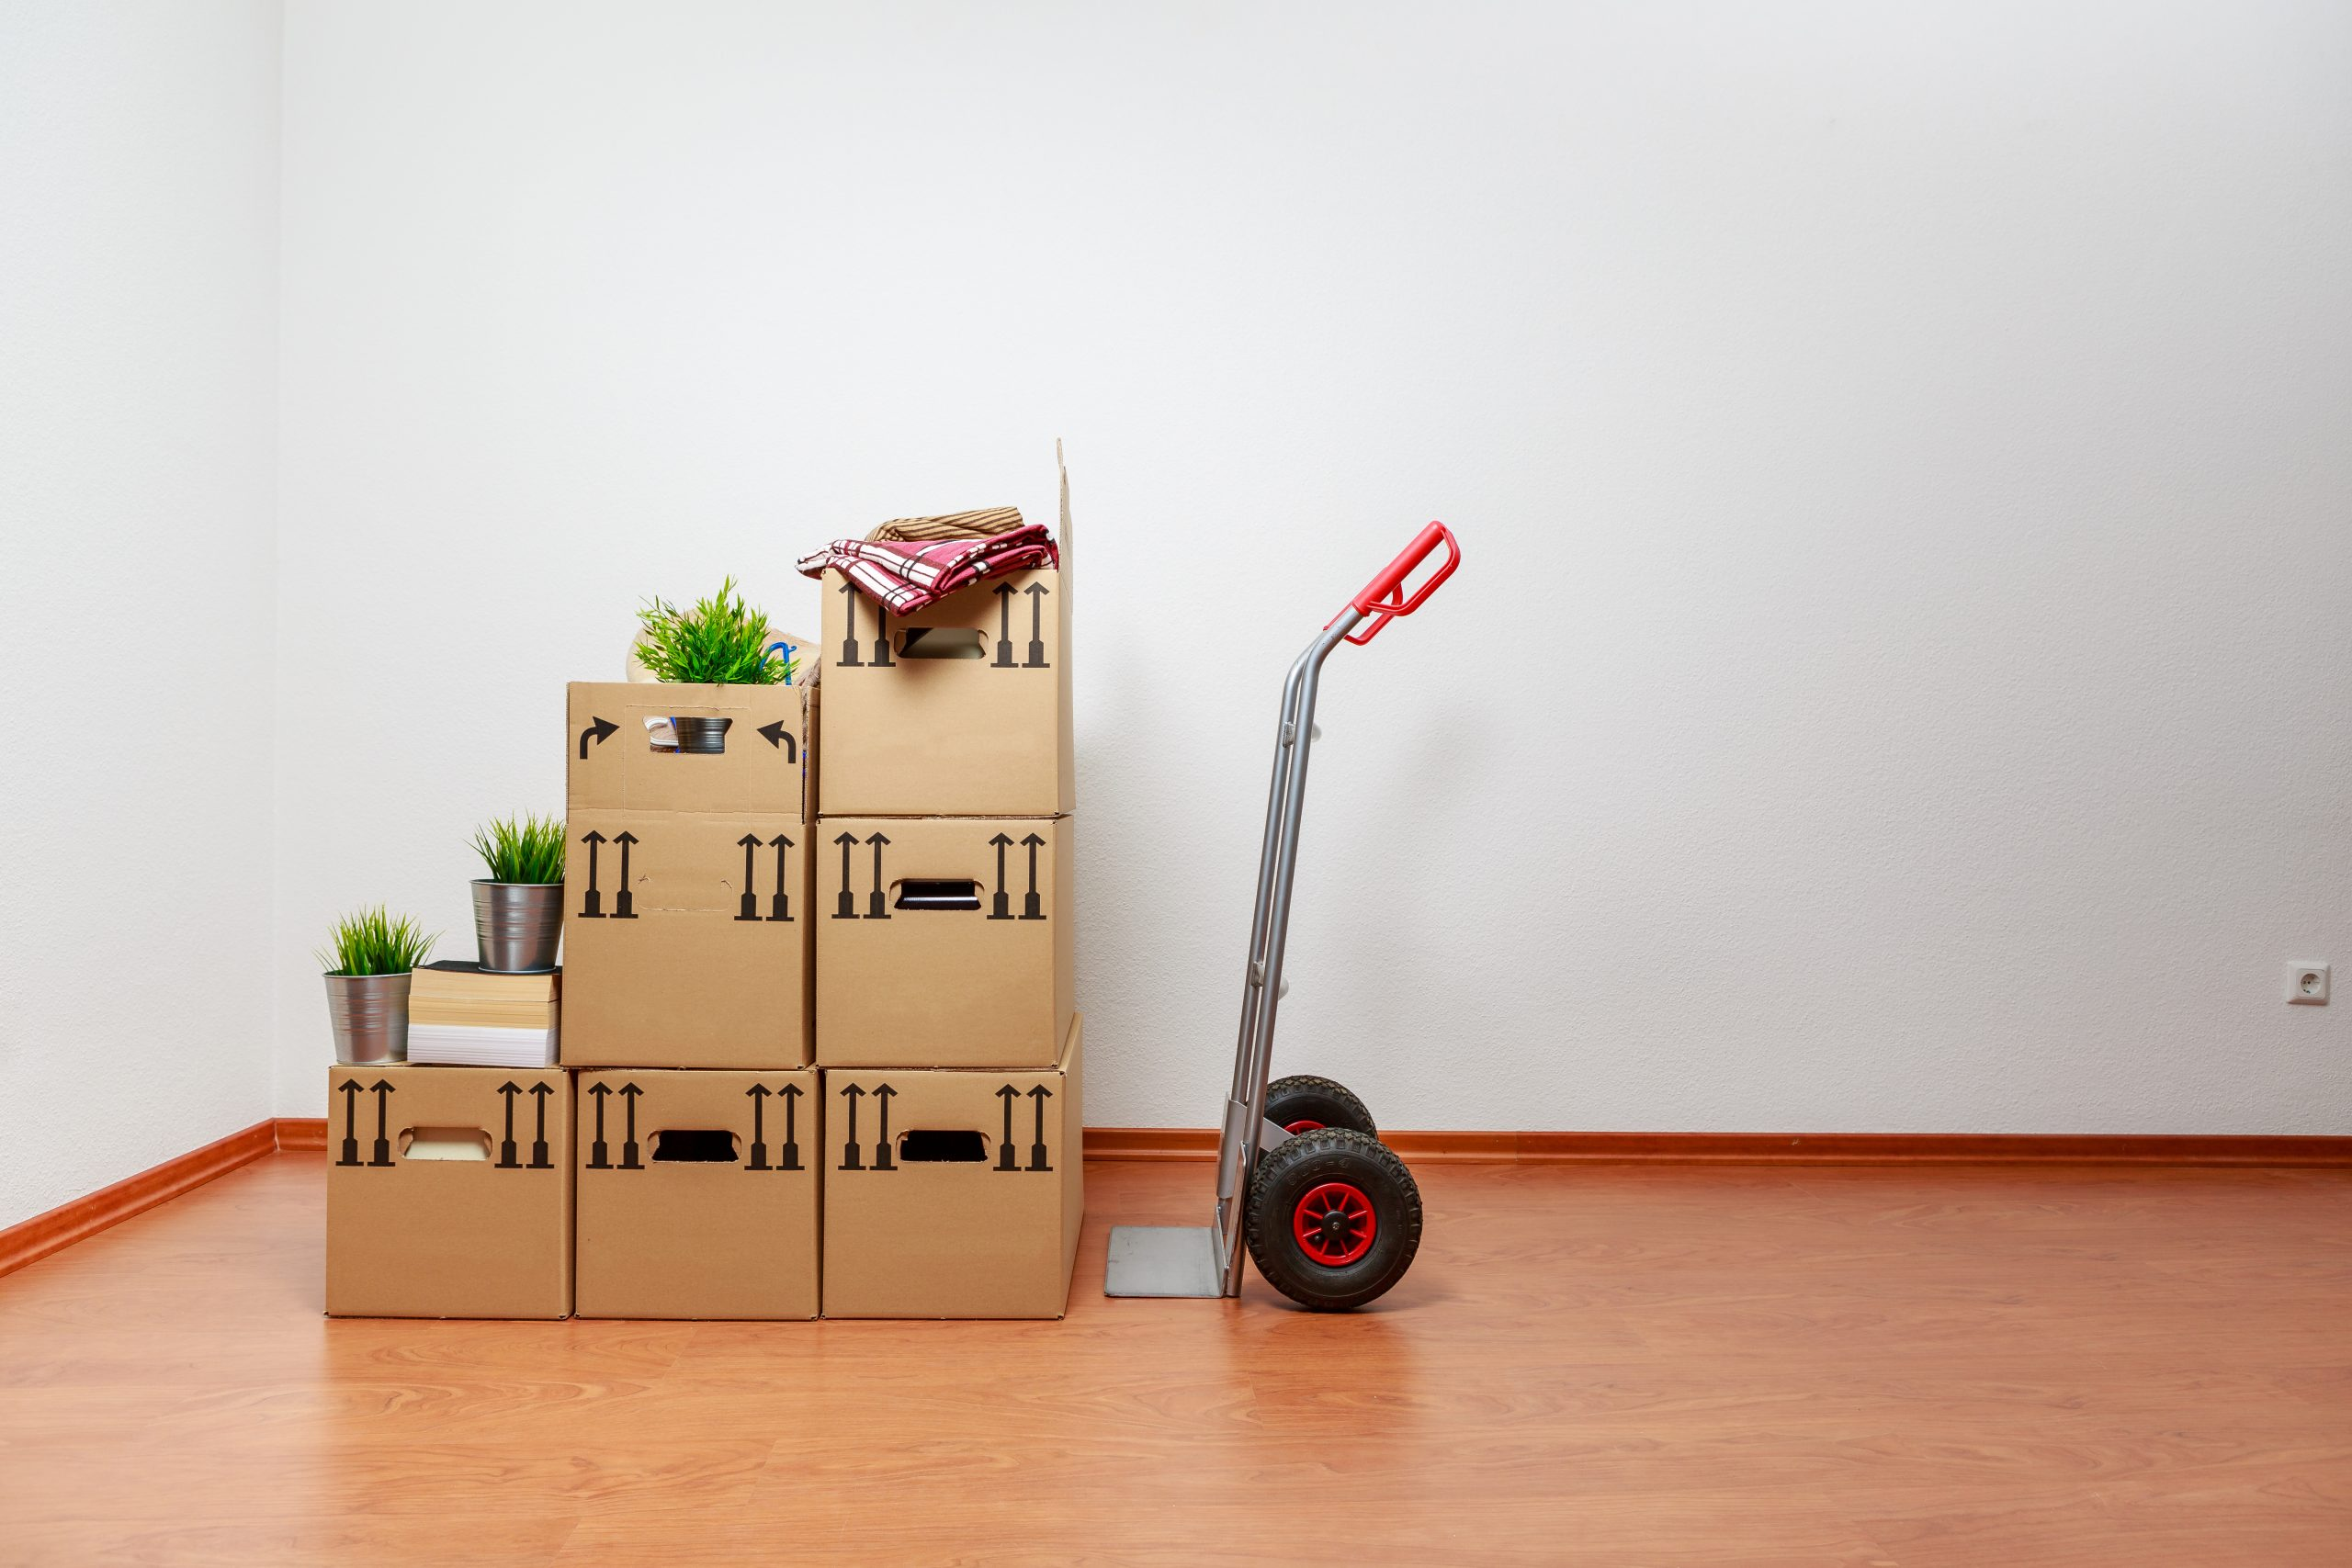 What Qualities Should I Look For in A Mover?